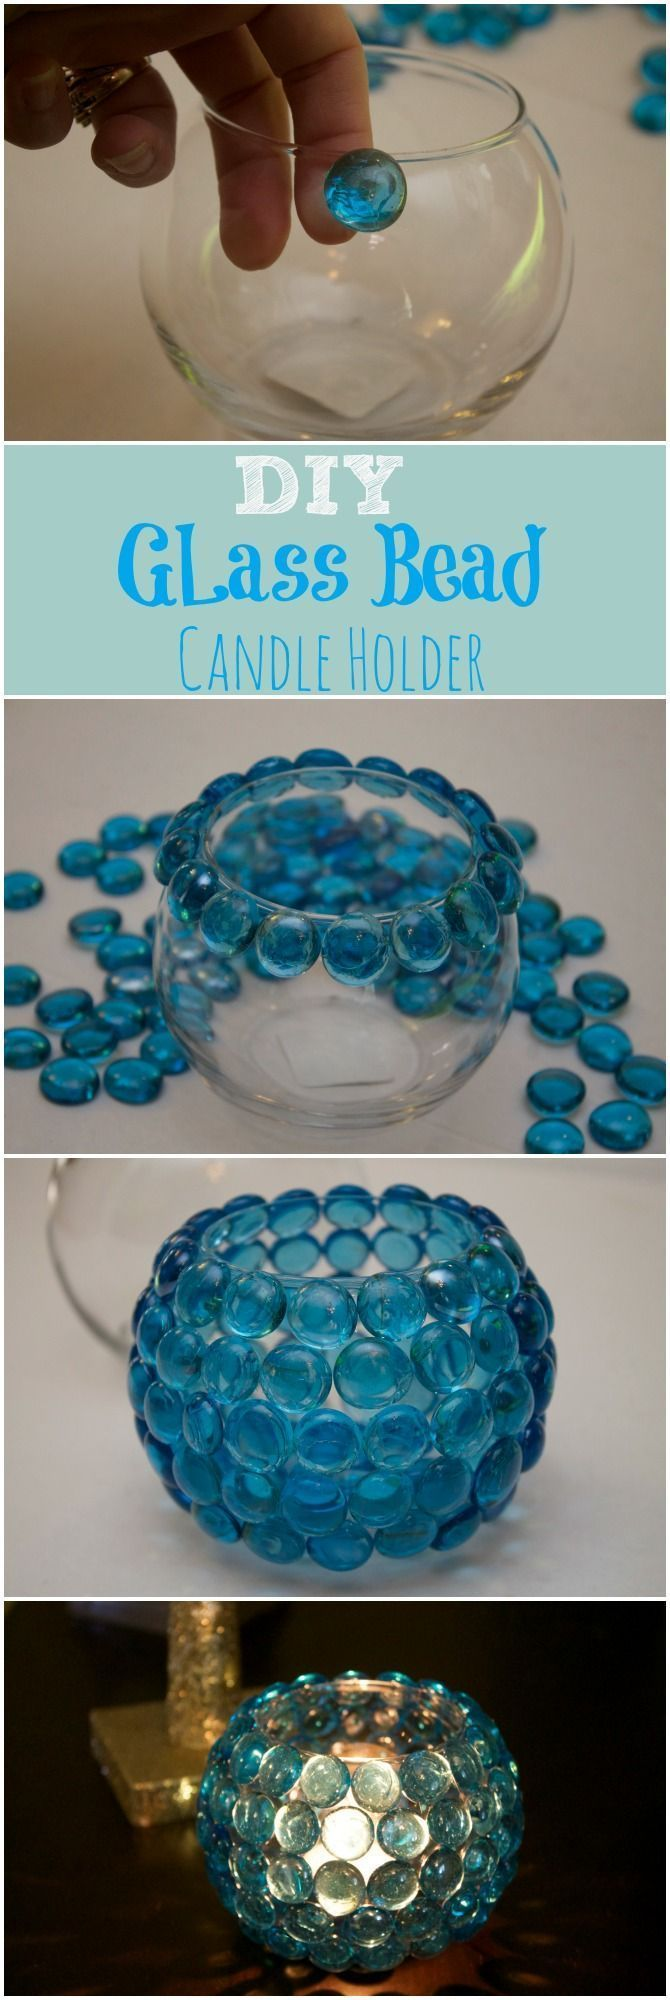 Homemade candle holders are an affordable way to dress up your decor, whether you use them in the home or for special occasions such as weddings, showers or hol